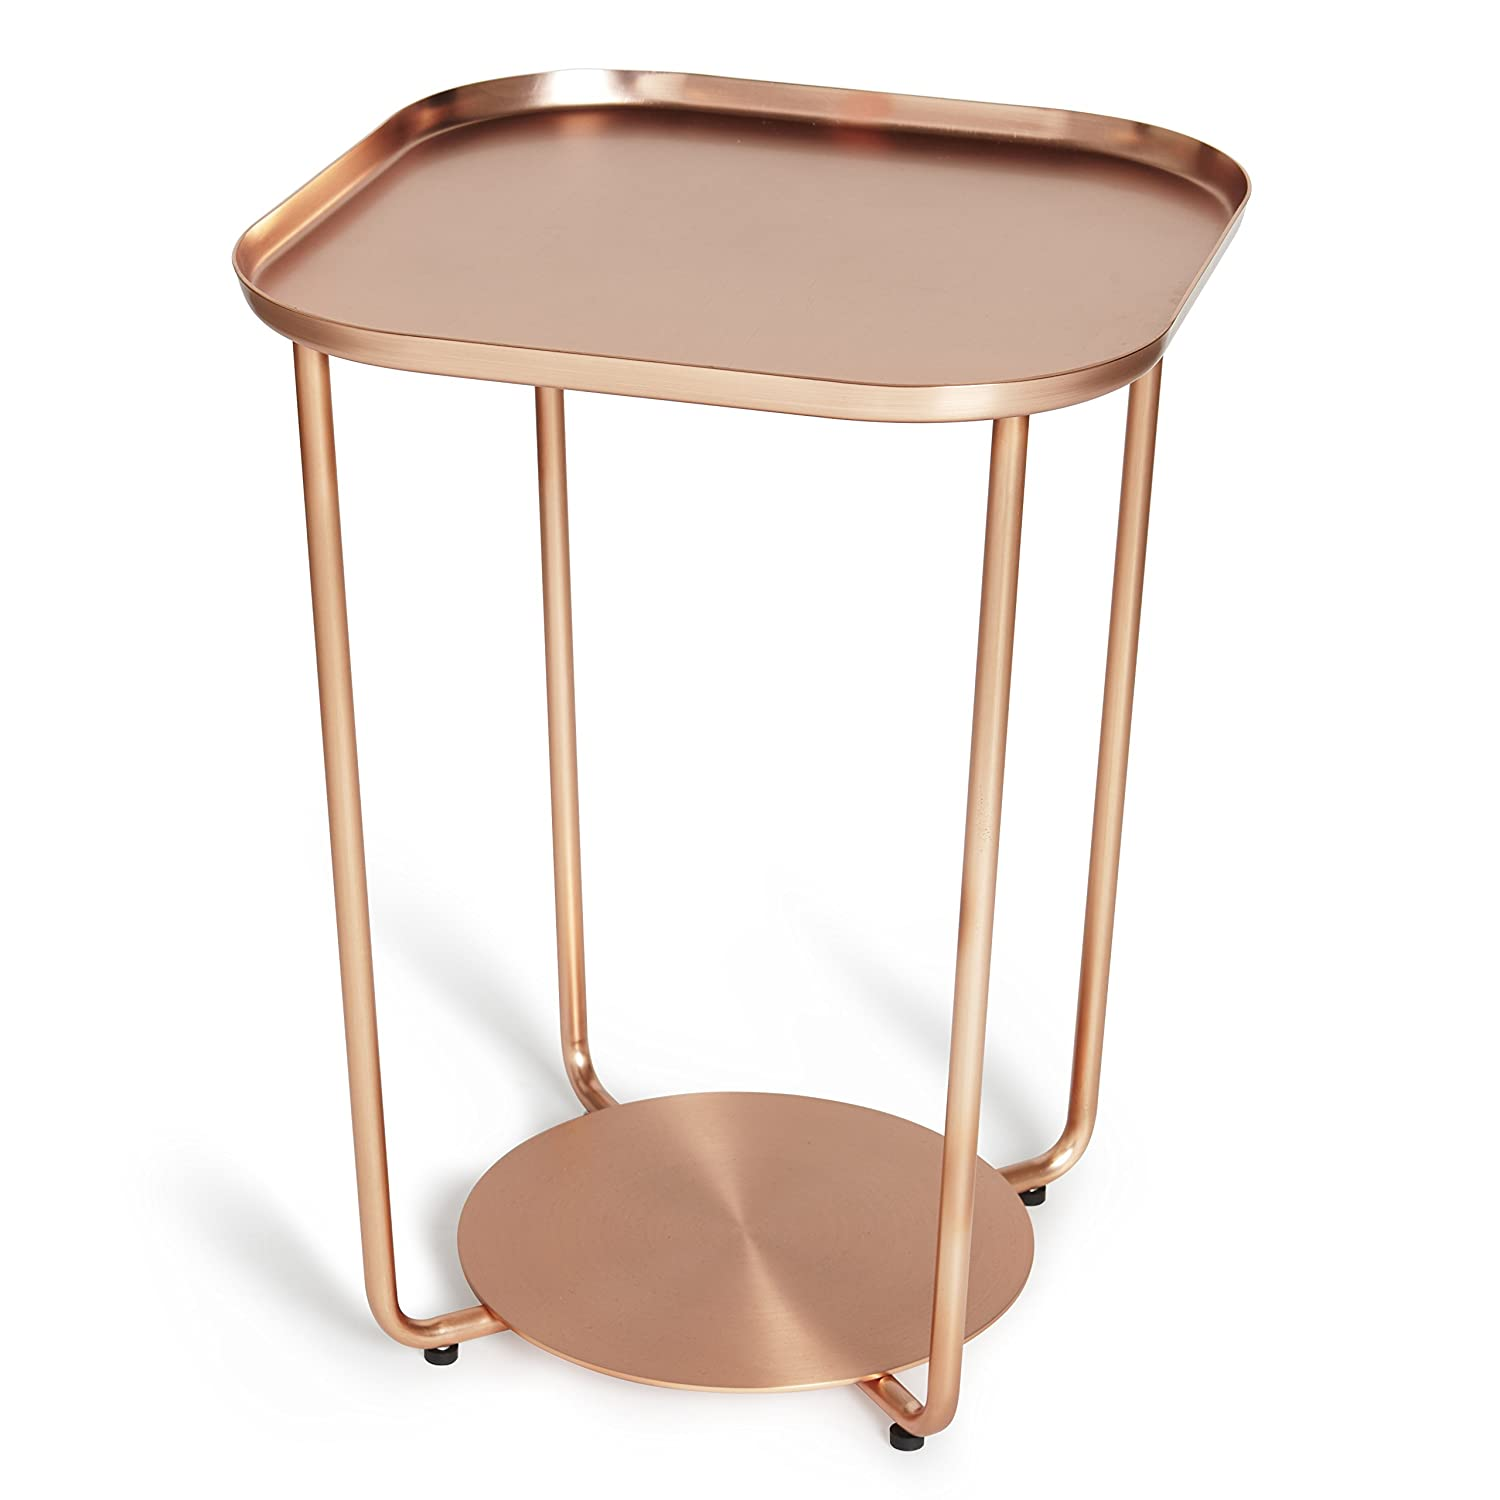 Umbra Annex Side Table, Copper 1005231-880